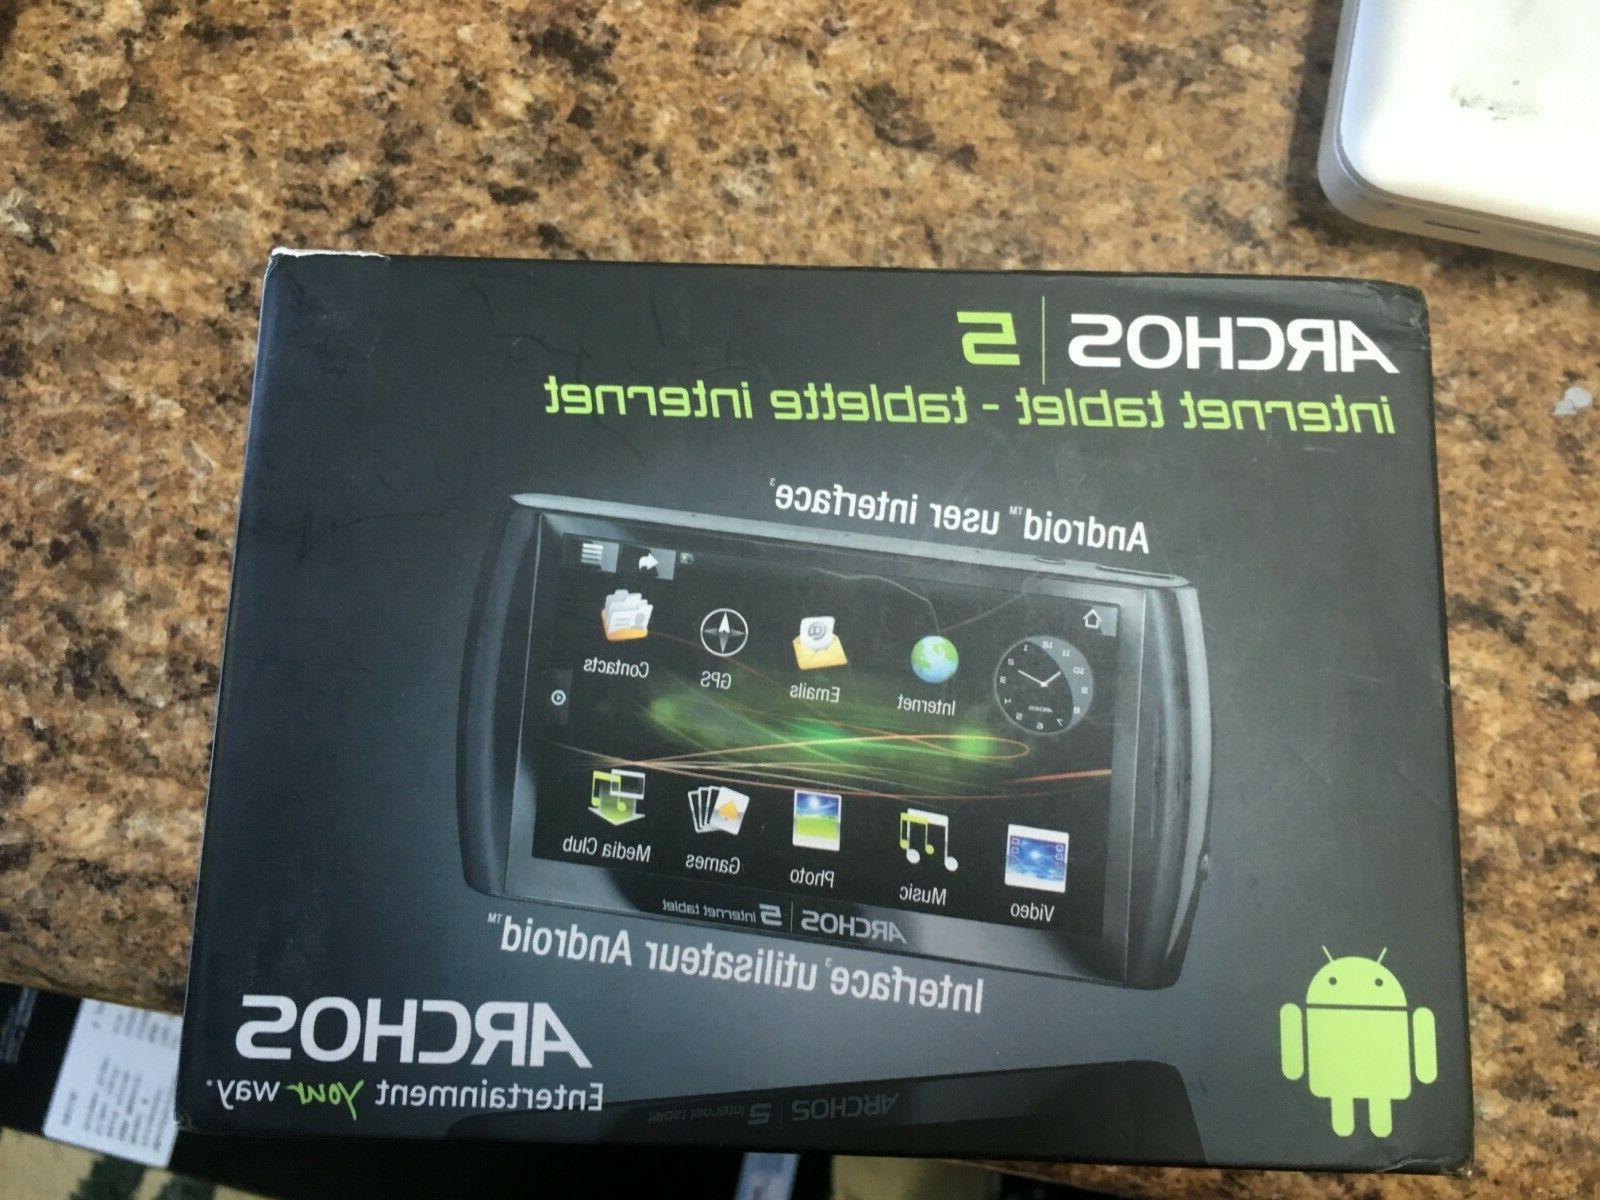 5 16 gb internet tablet with android